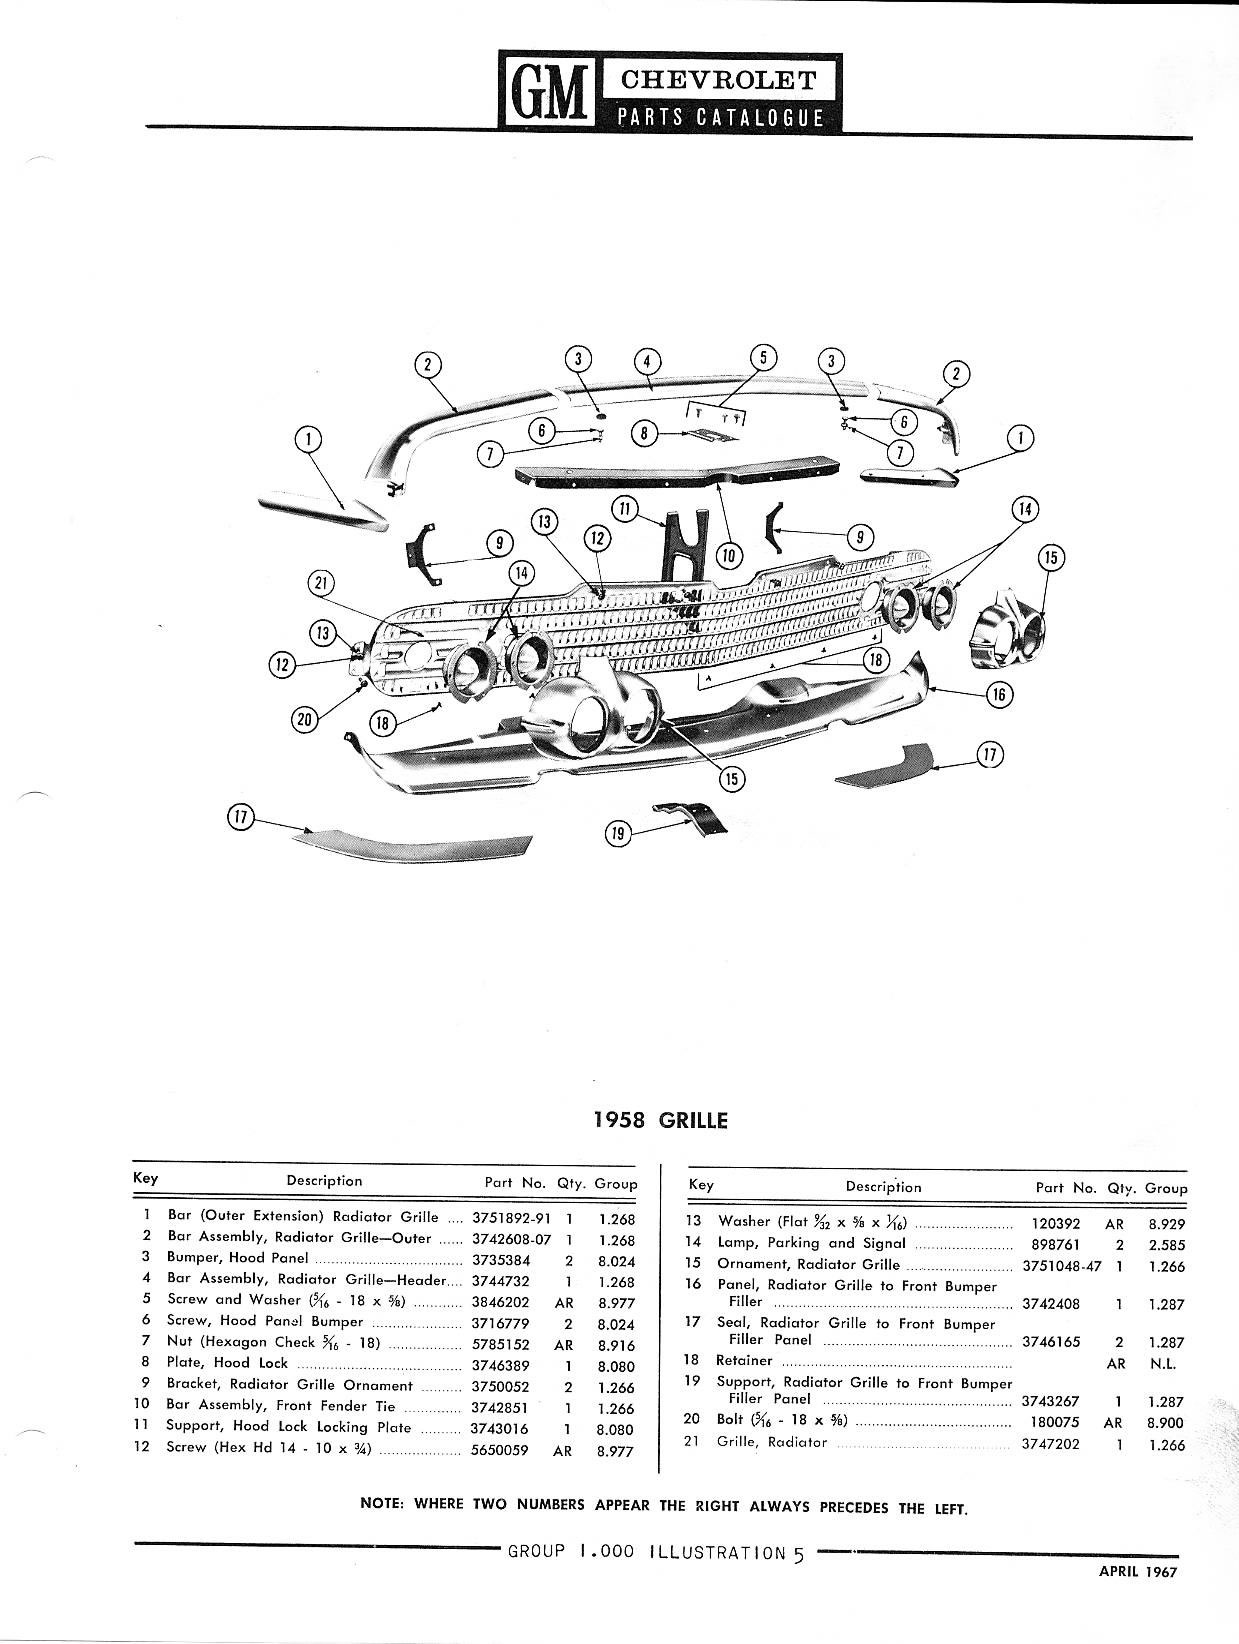 1958-1968 Chevrolet Parts Catalog / Image141.jpg